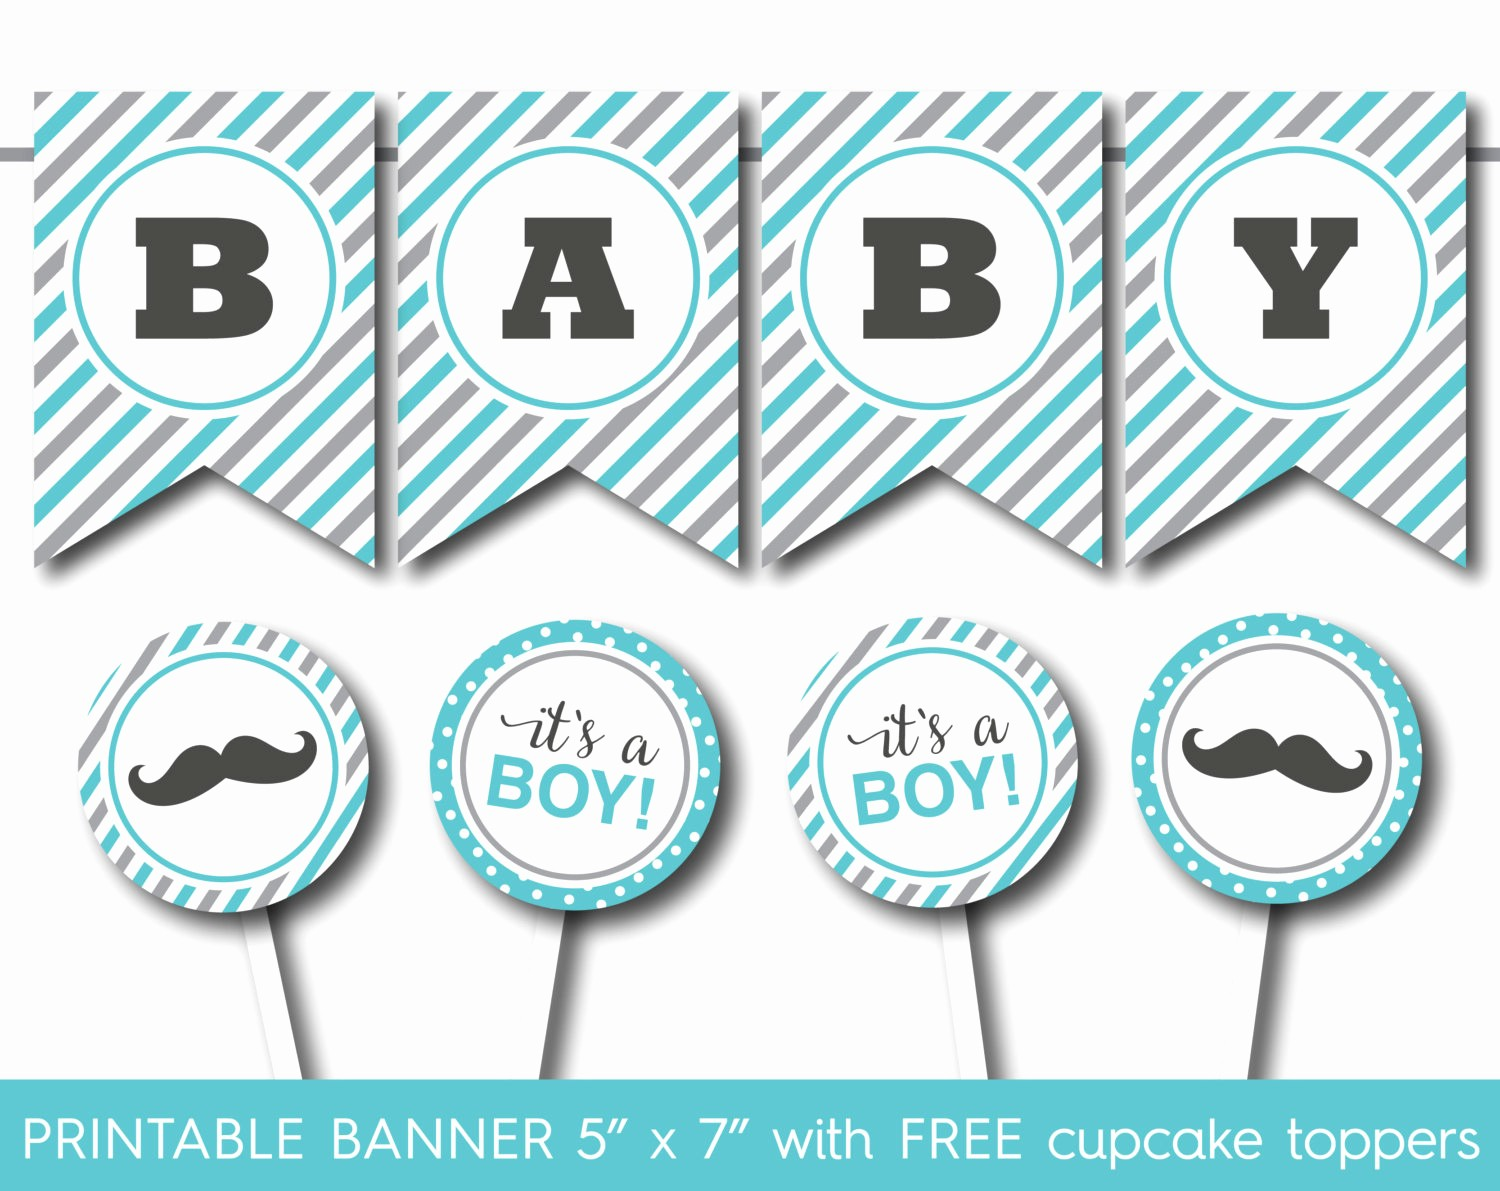 It's A Boy Banner Printable Luxury 44 Cool Banner Letters